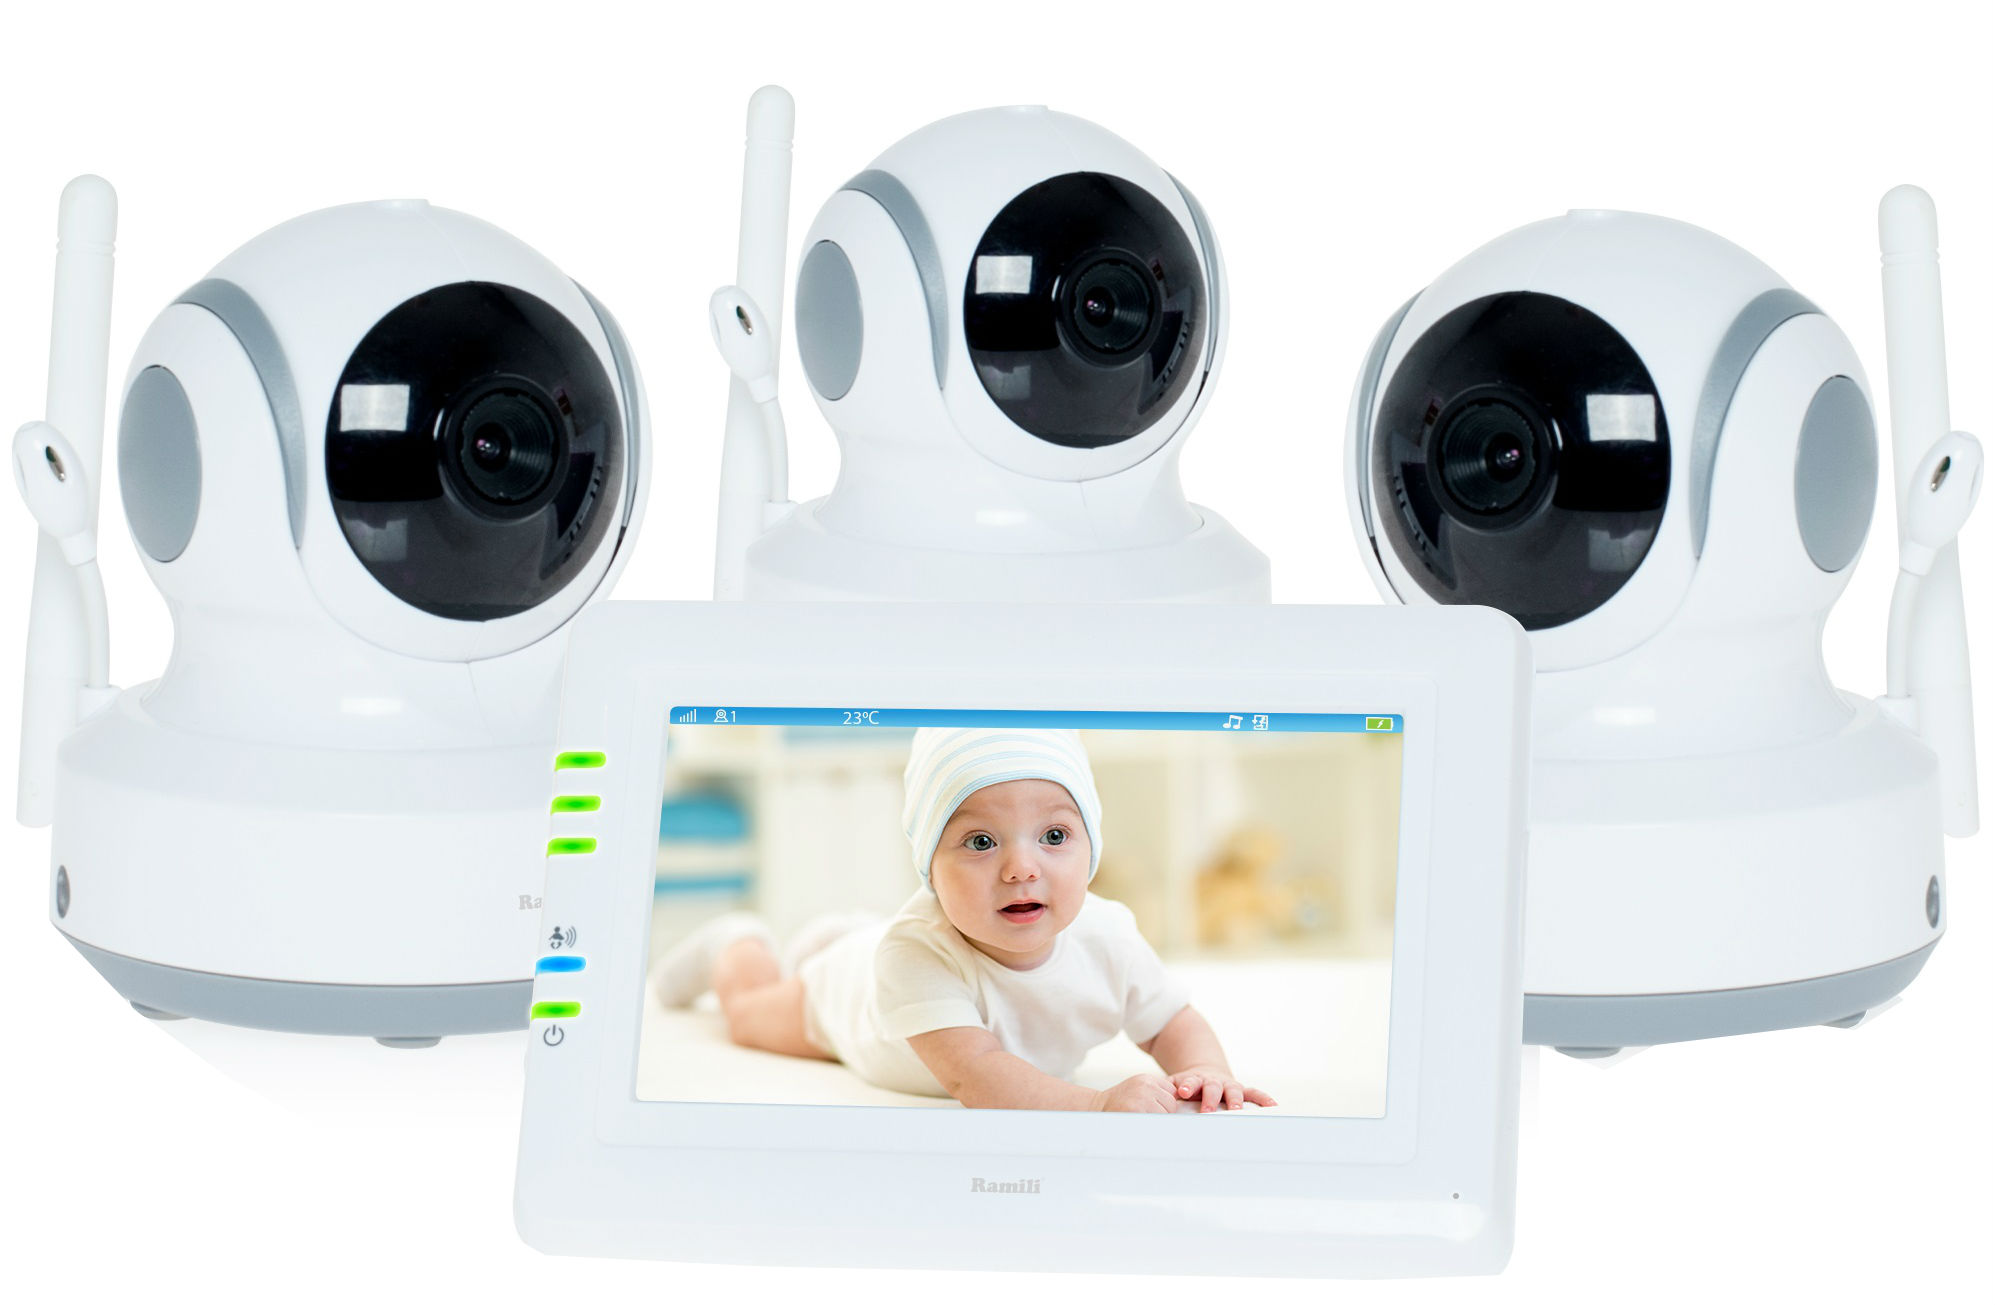 Ramili Baby Video Baby Monitor RV900X3